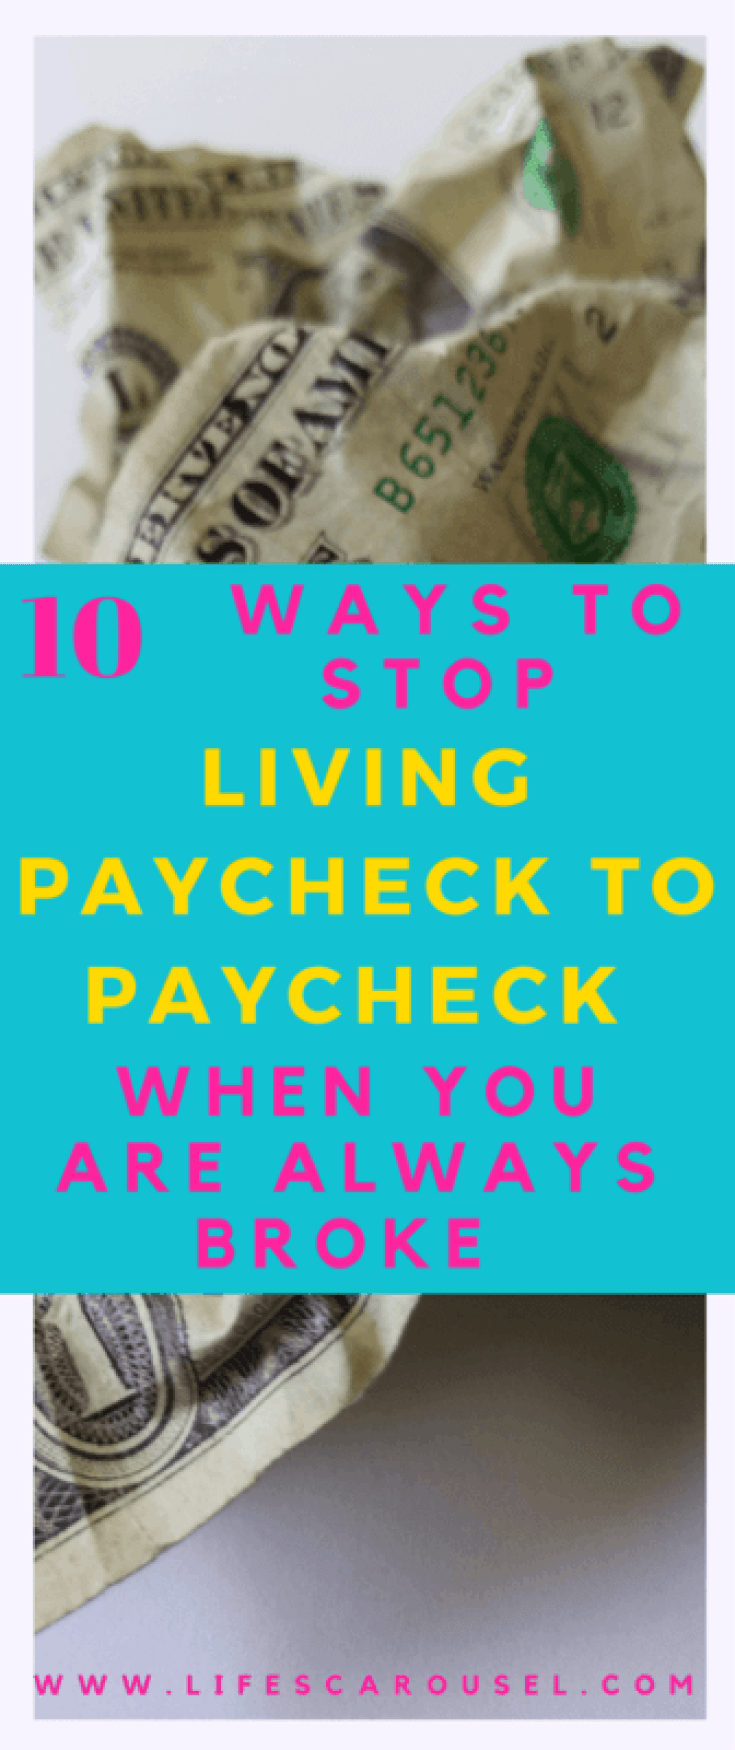 Stop Living Paycheck to Paycheck | 10 ways to get your budget on track, even if you're always broke! Pay off debt, save money and have extra cash -